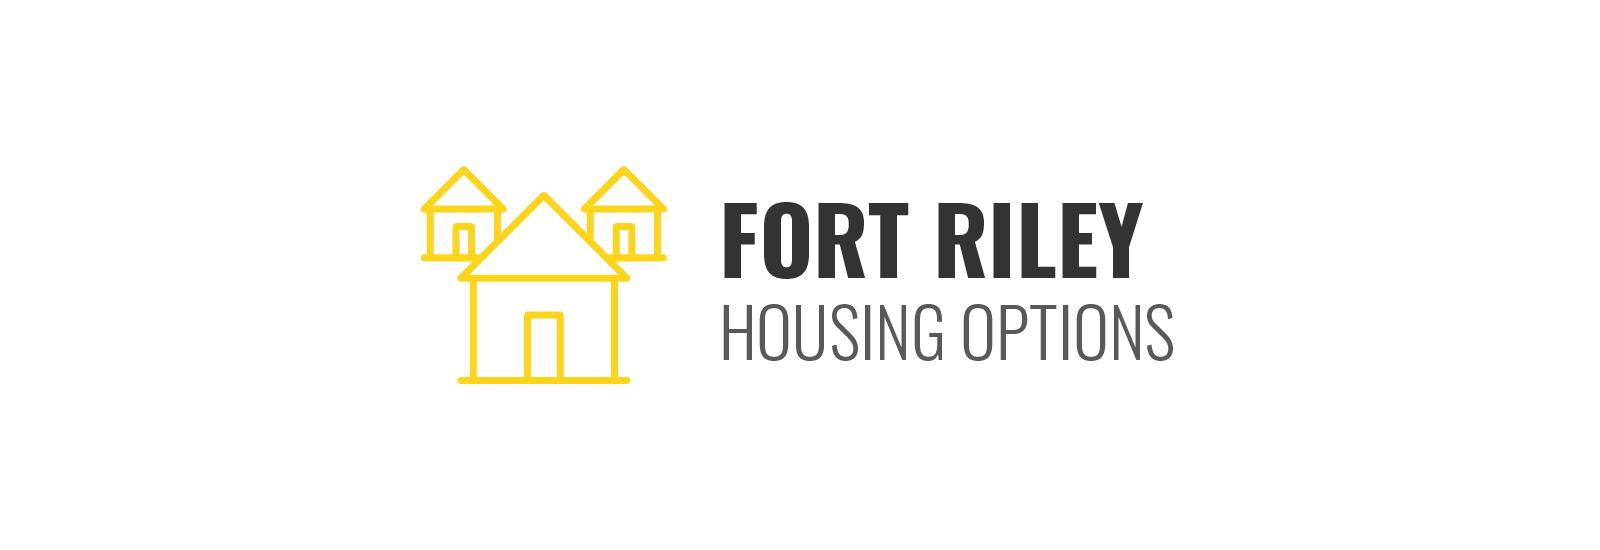 Fort Riley Housing Options